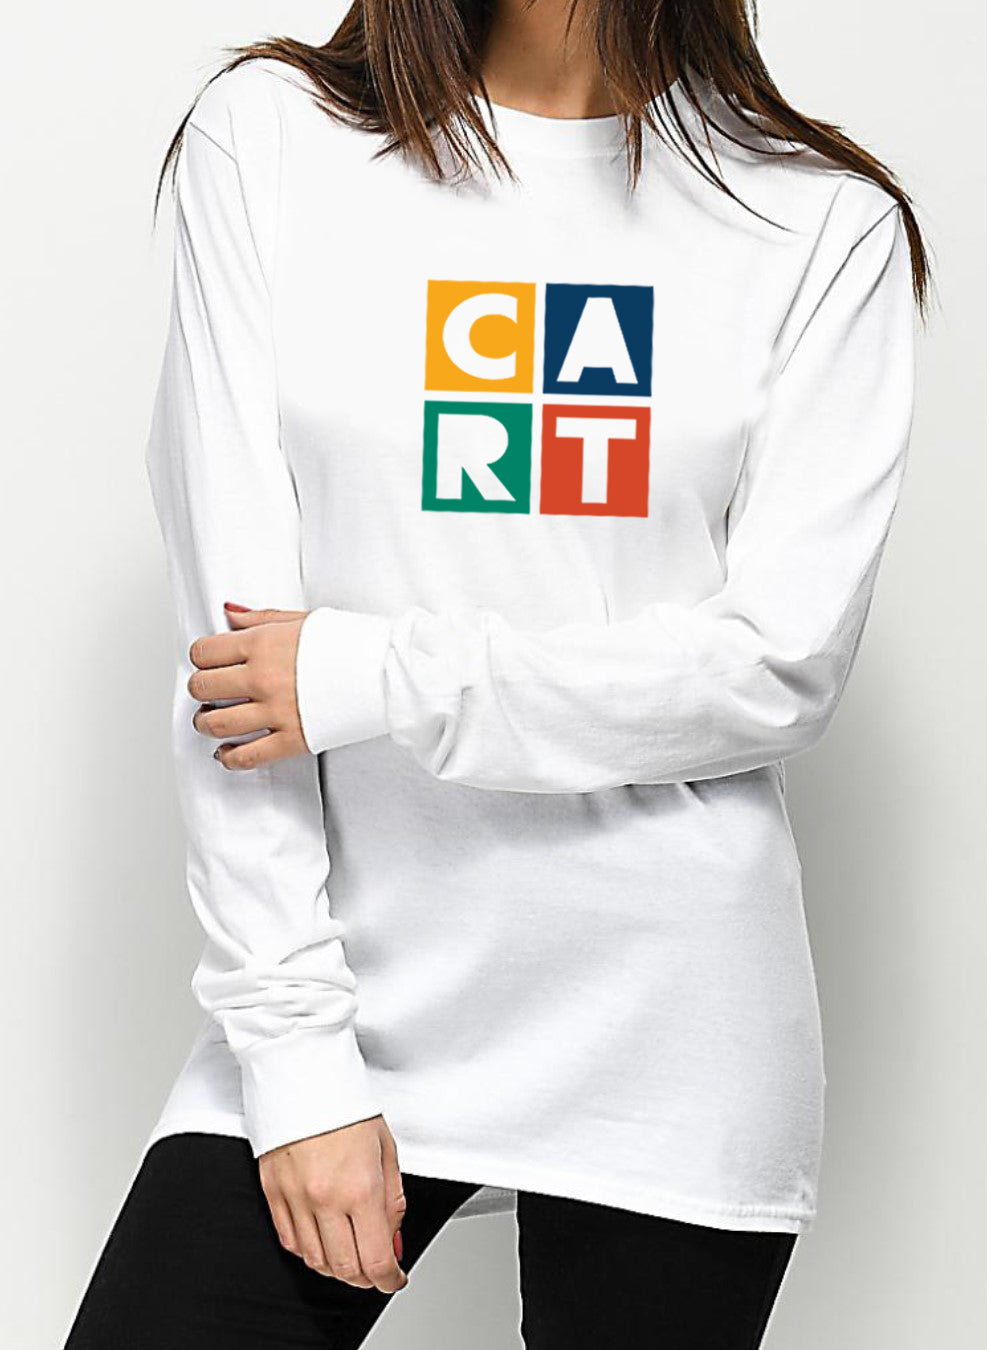 Long Sleeve T-Shirt - CART Colored Logo / Unisex Fit